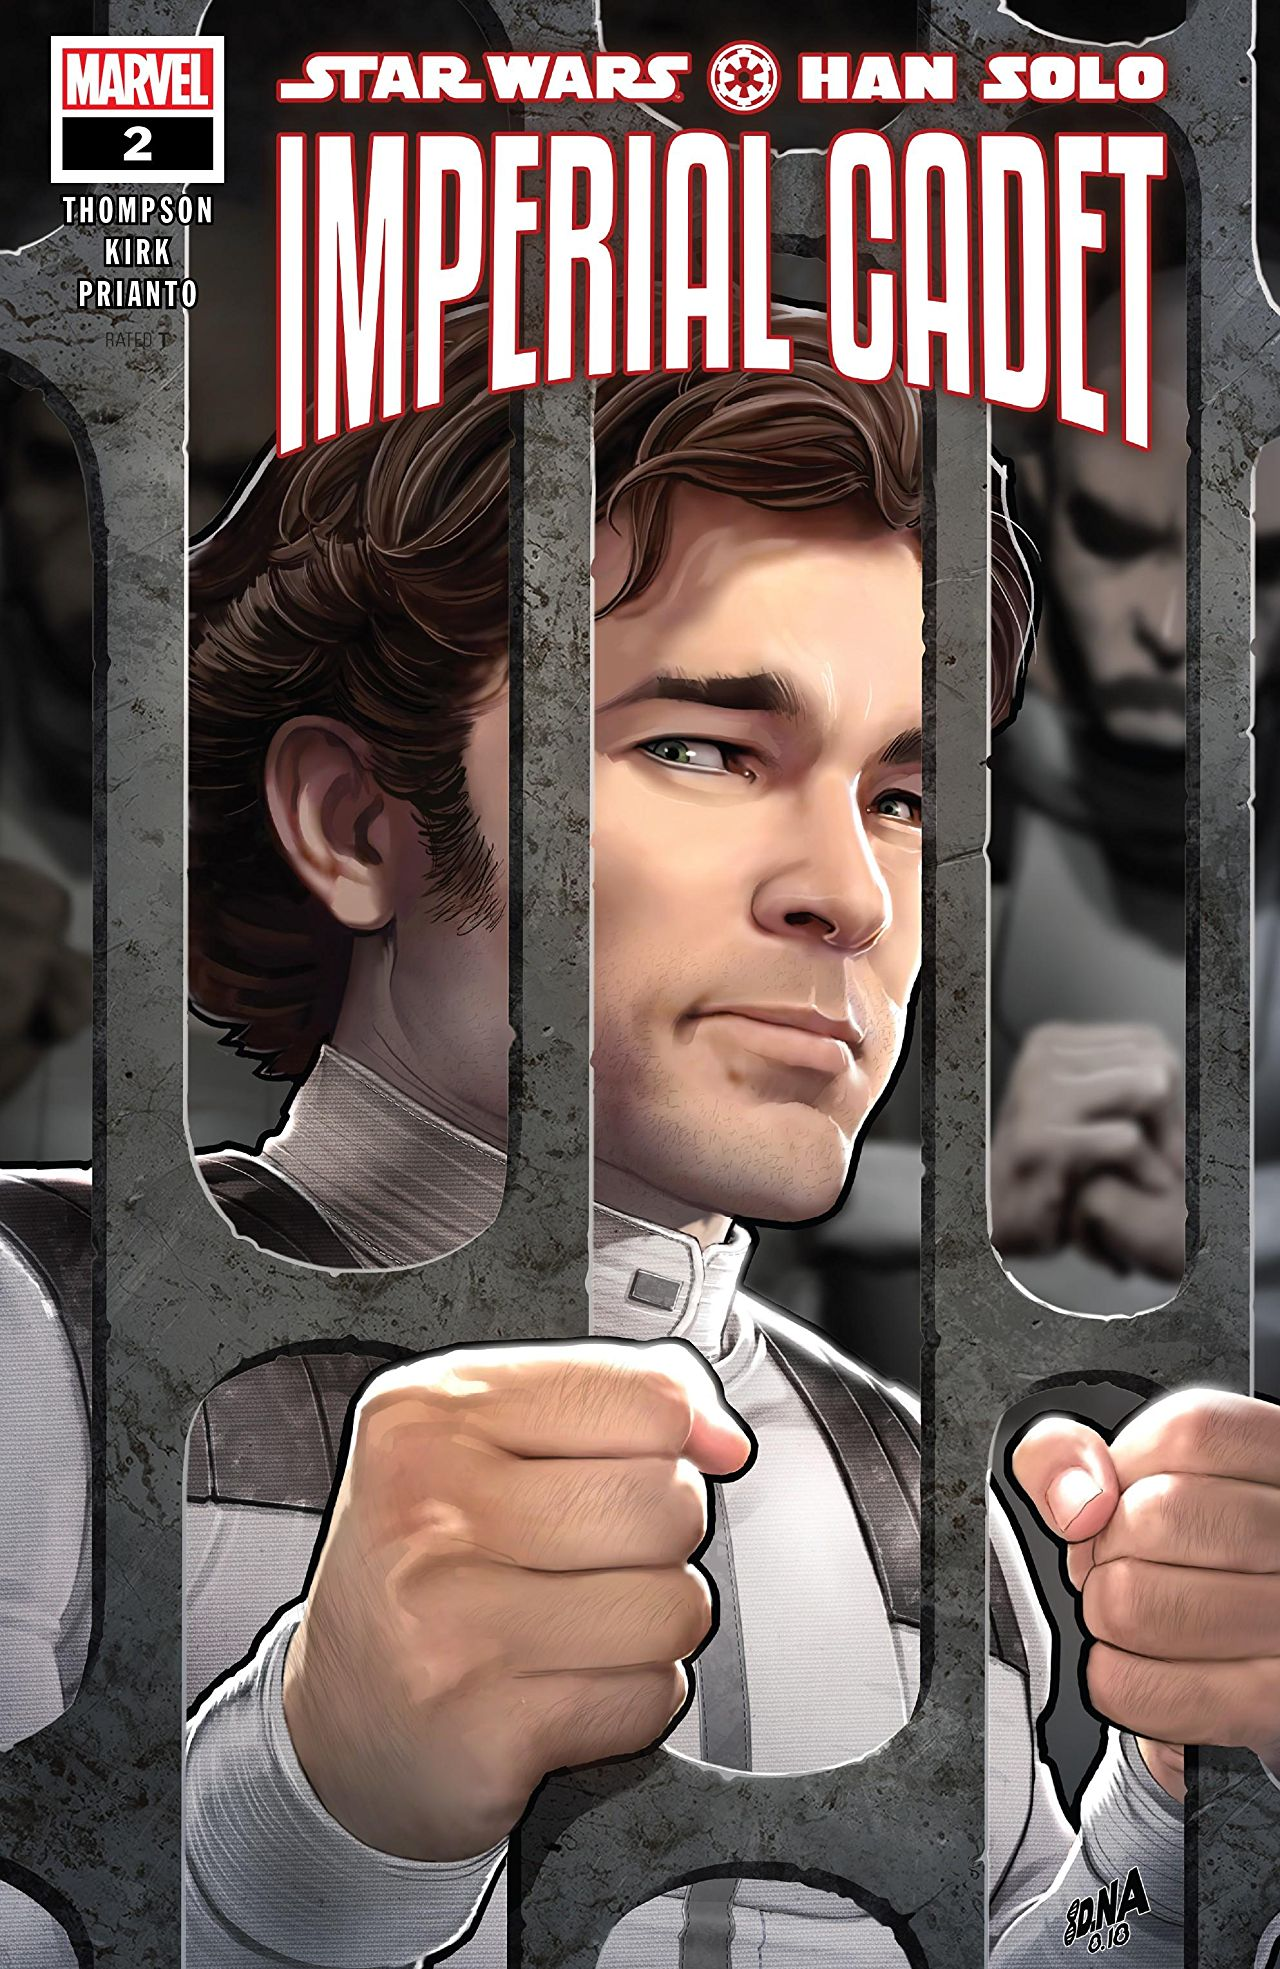 Marvel Preview: Star Wars: Han Solo, Imperial Cadet #2